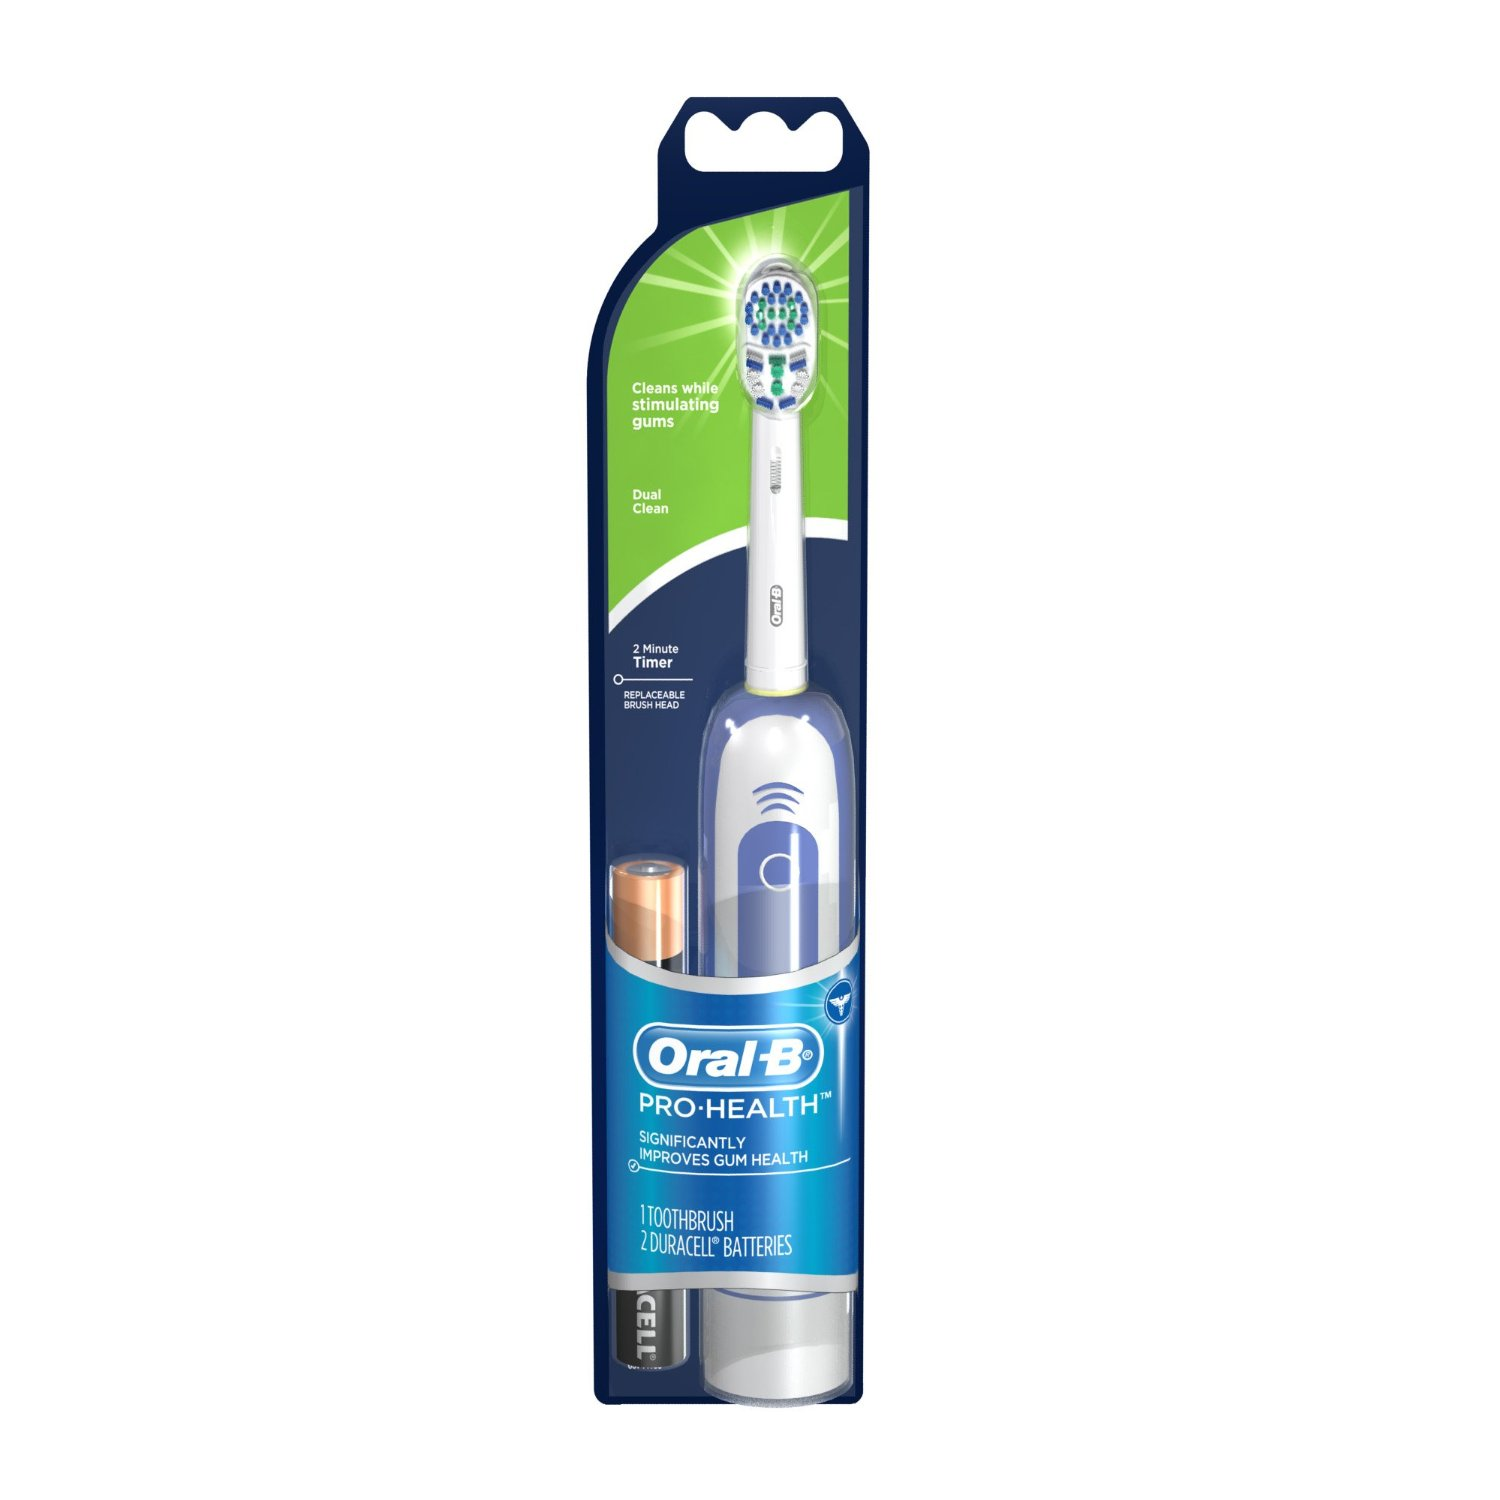 Find exclusive offers for your favorite Oral-B products. Print at-home coupons for electric and manual toothbrushes, replacement brush heads and more.